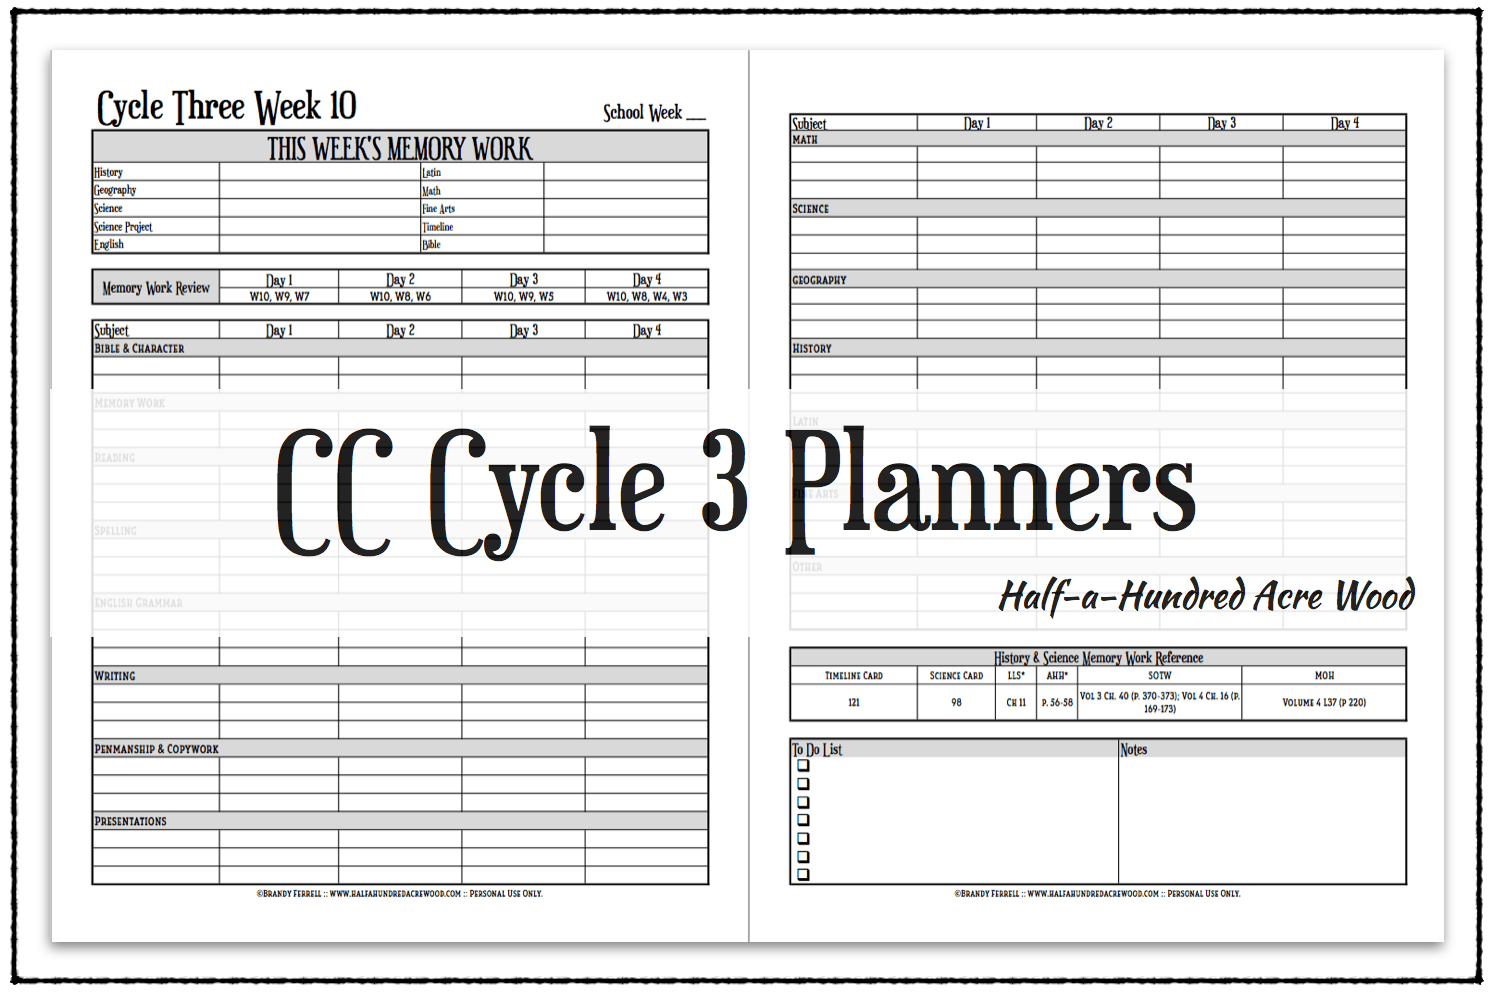 New Cc Cycle 3 Planners